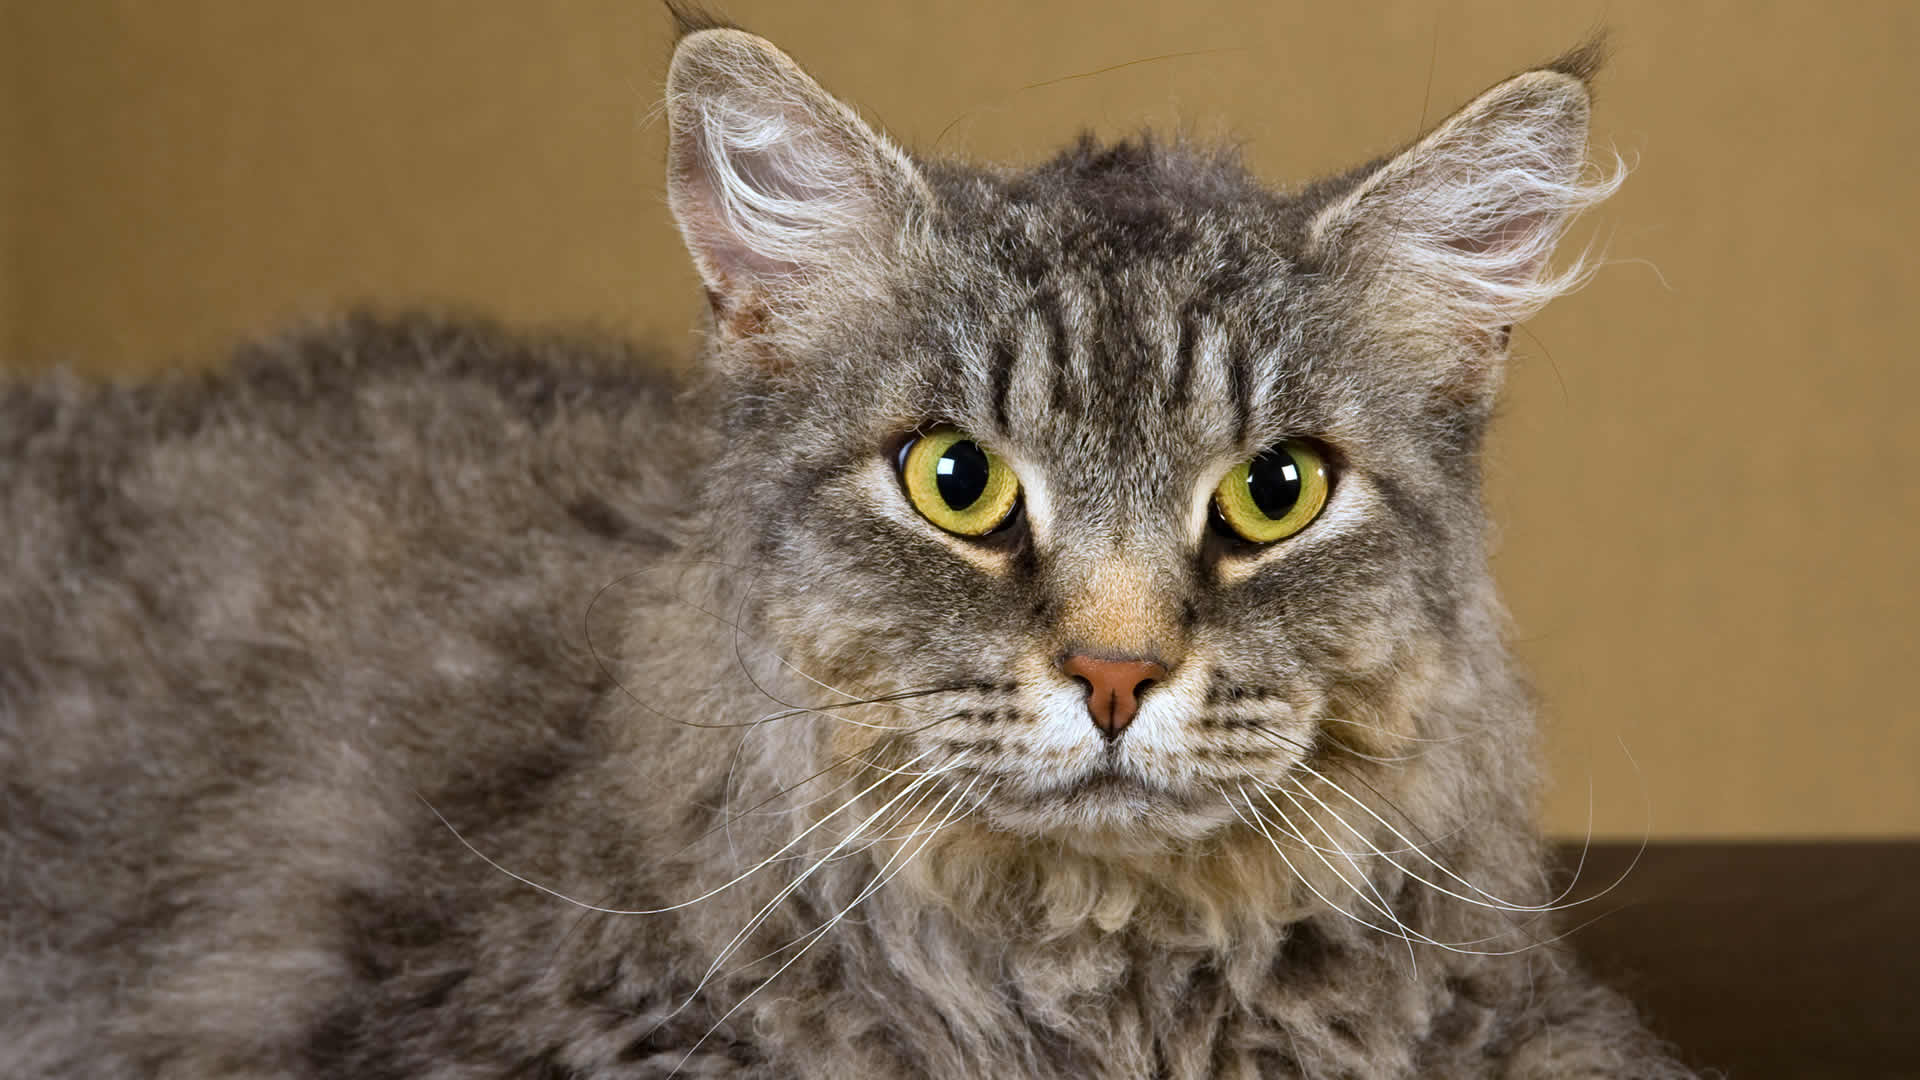 LaPerm cats are easily recognized by their curly, permed hairstyle which many owners instantly fall in love with